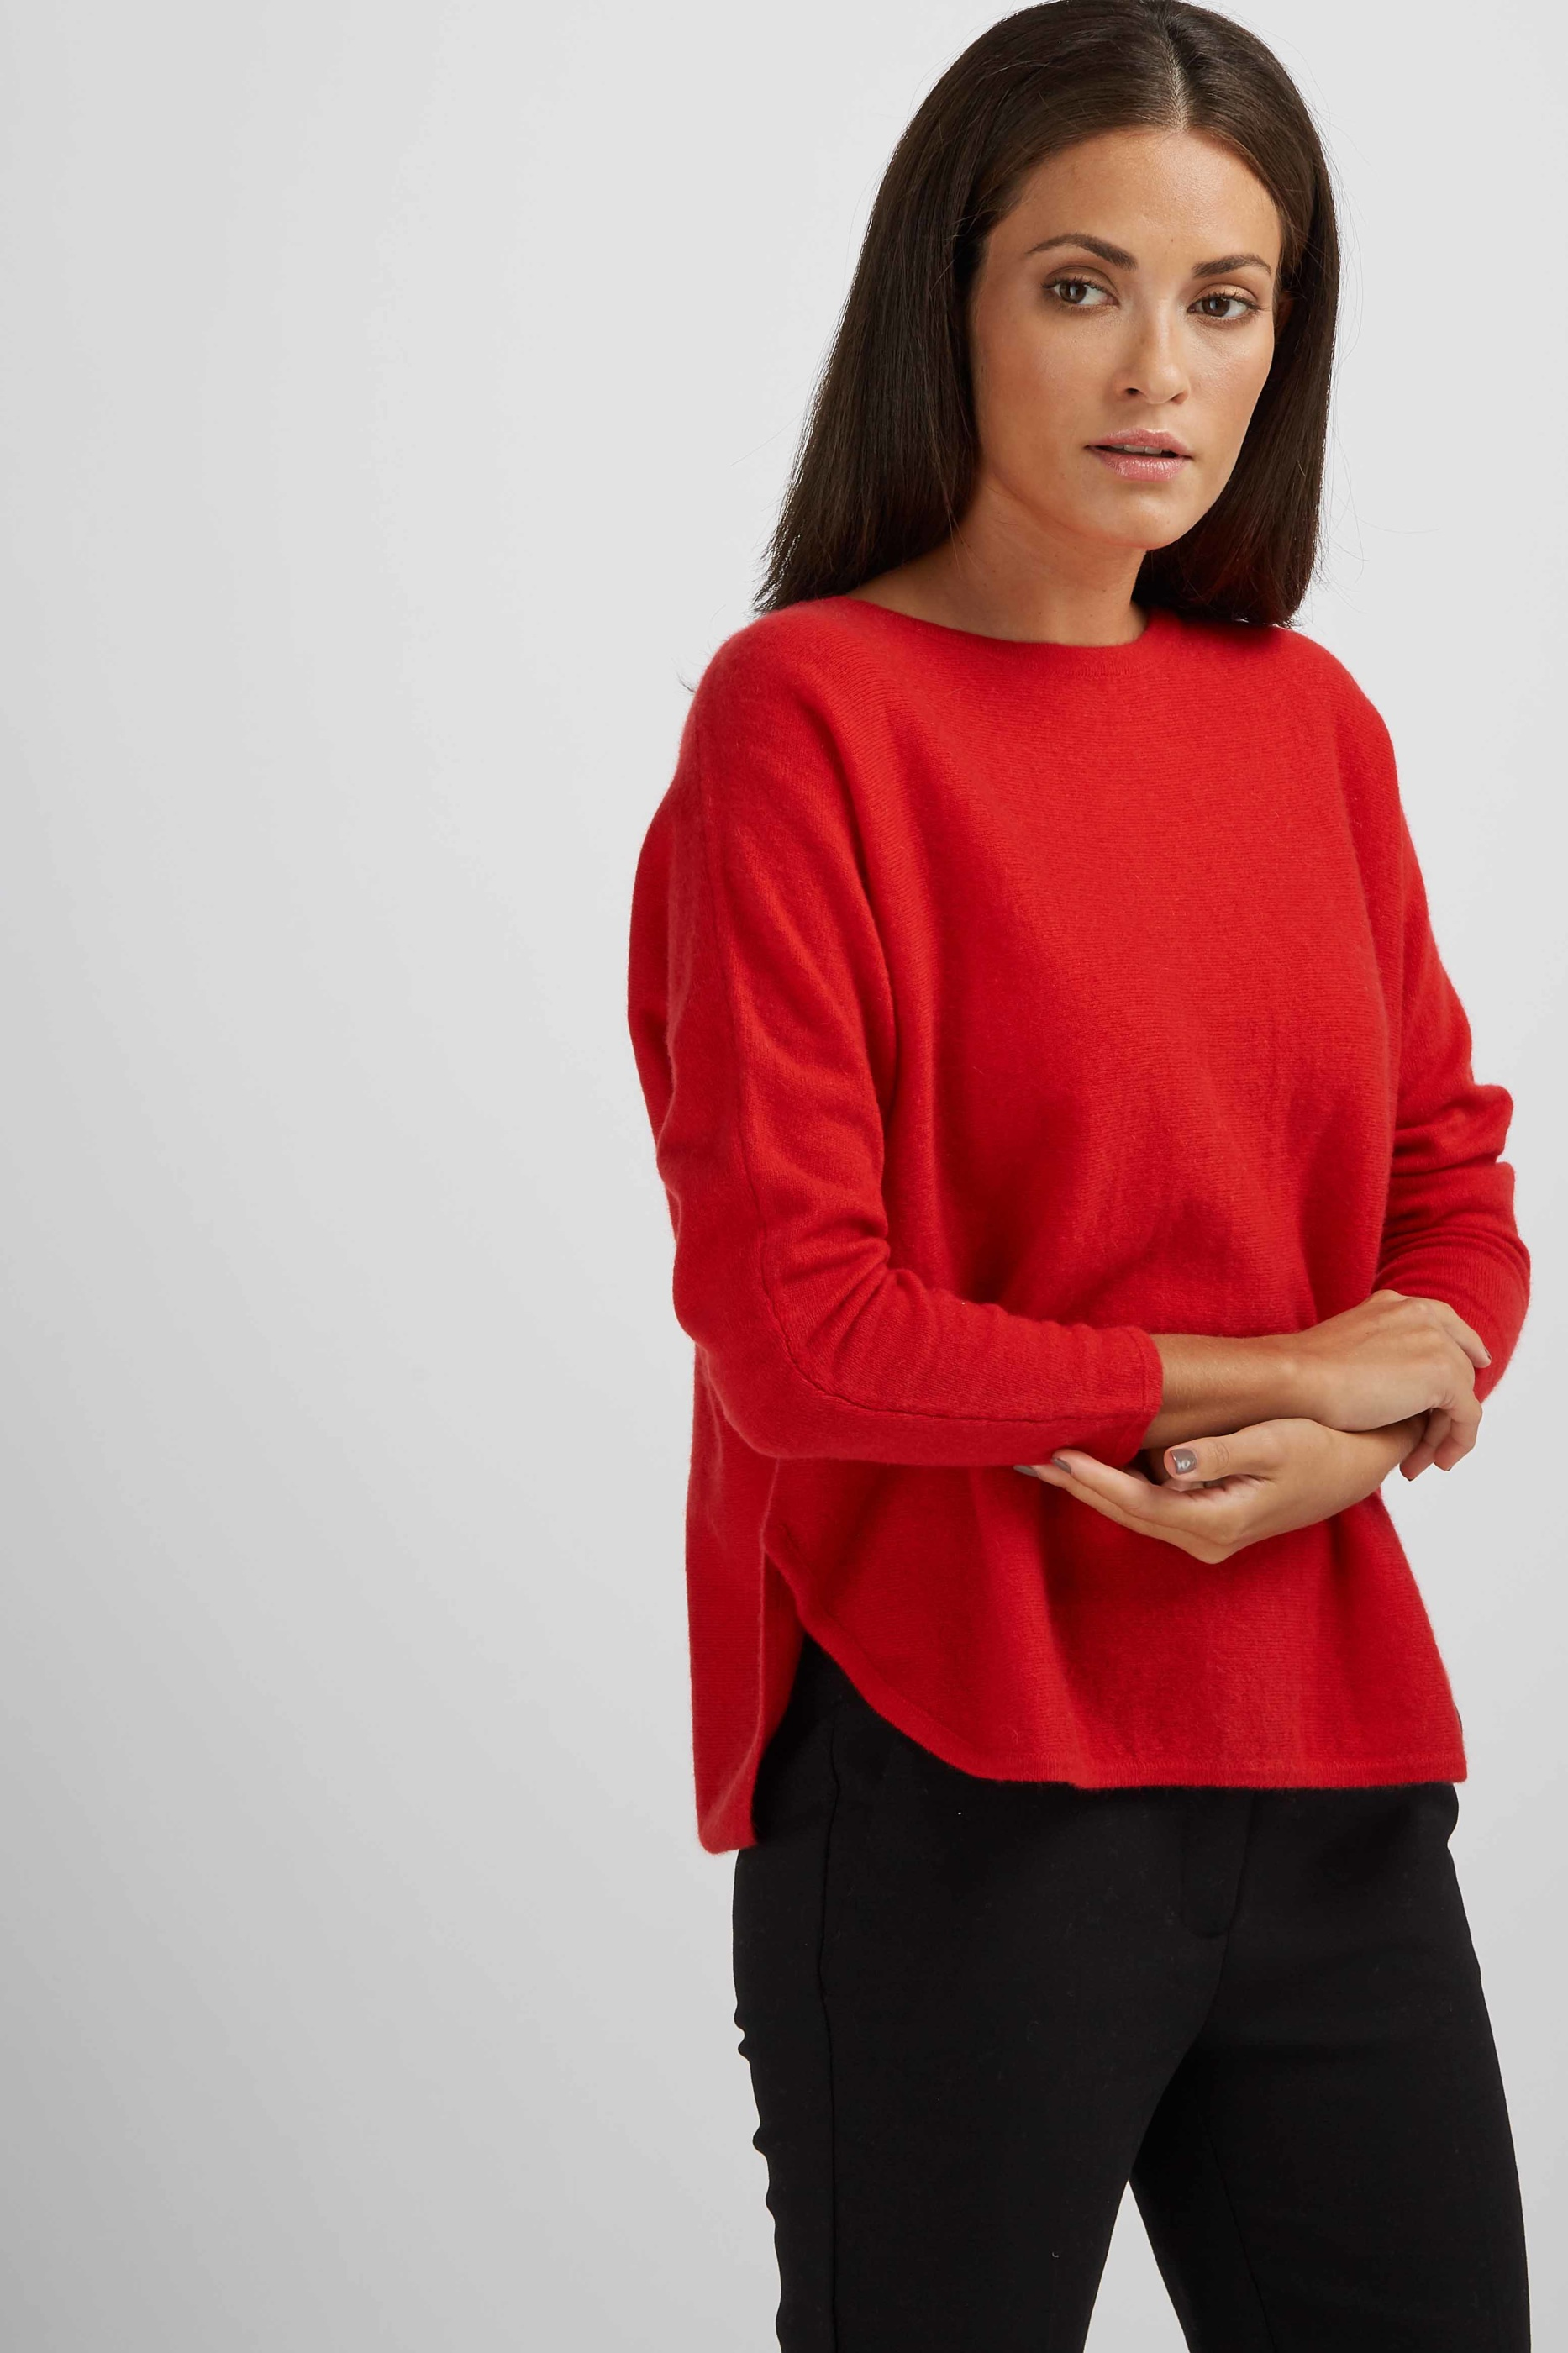 CurvedSweater_Red_3